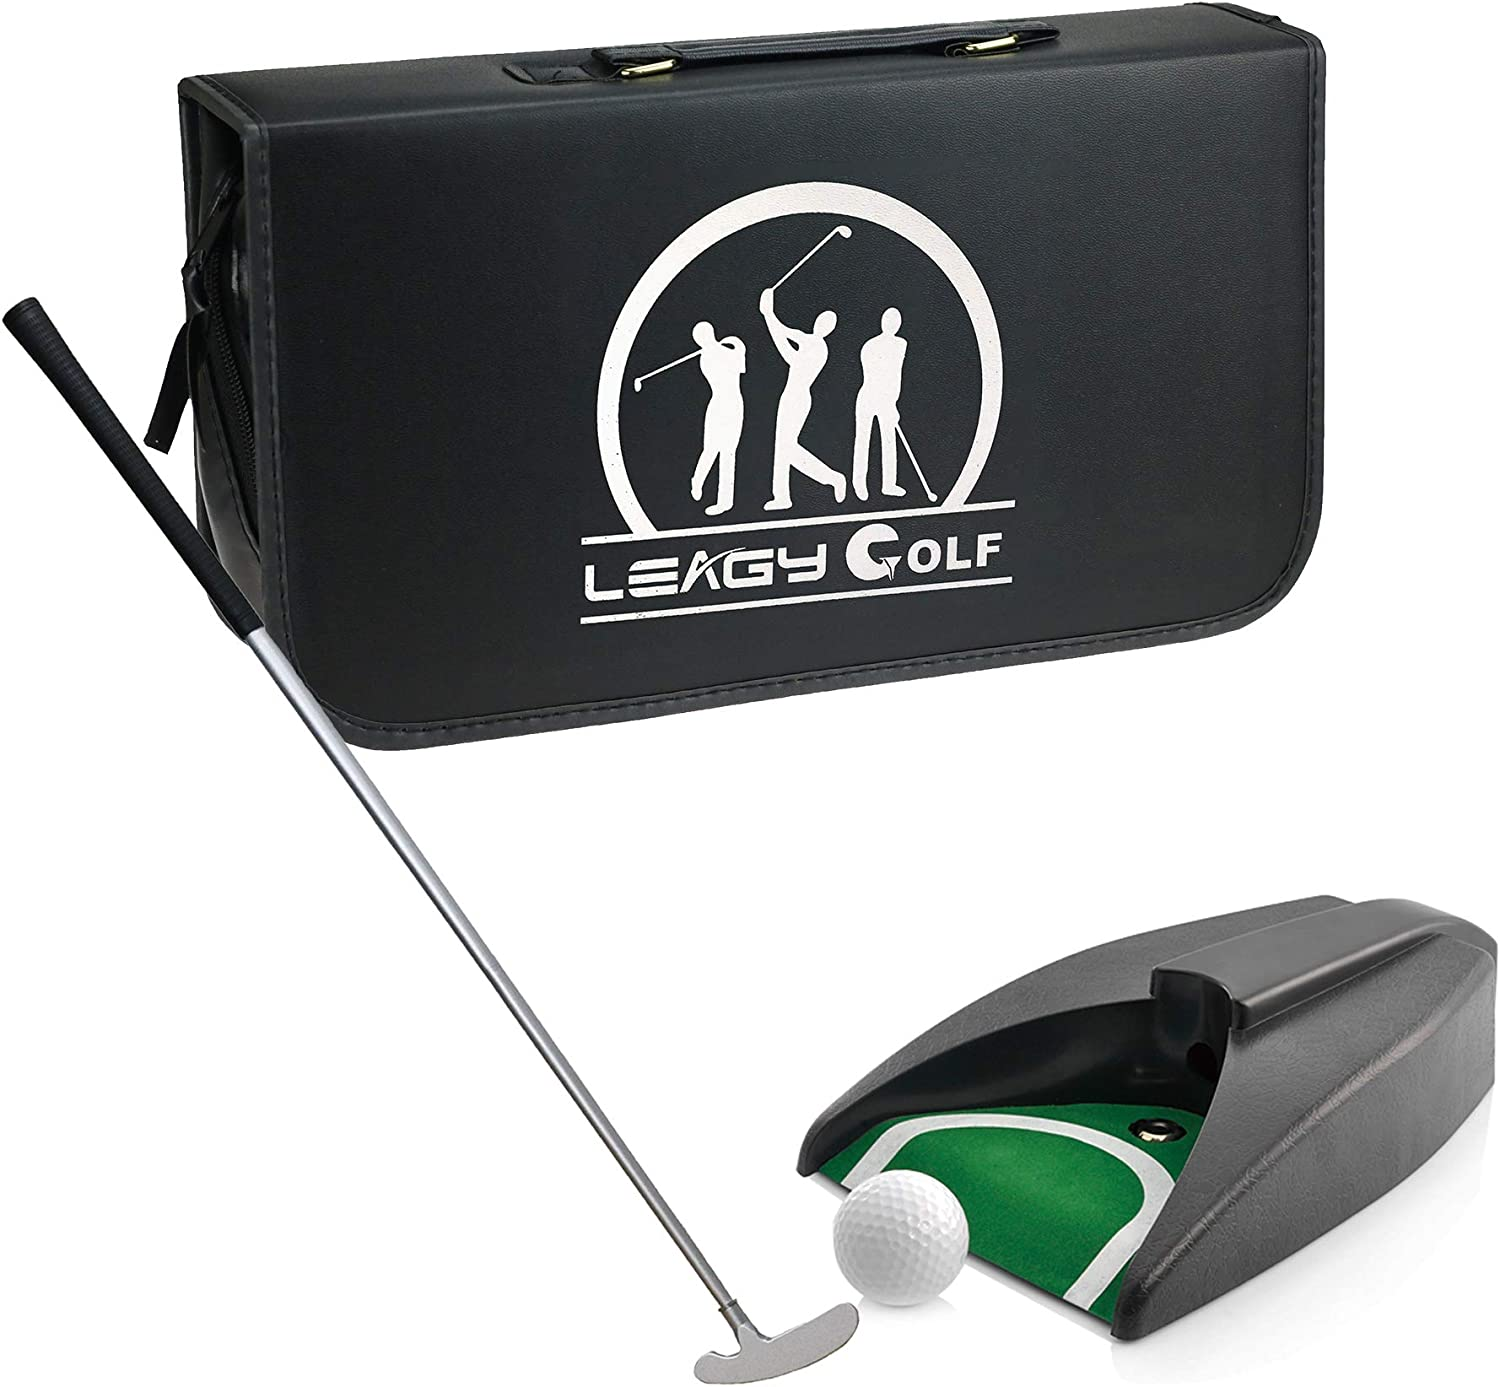 LEAGY Portable Golf Putter Travel Practice Putting Set with Case Indoor Outdoor Yard, Golfer Kids Toy Indoor Golf Games Set, Ball Return System Zink Alloy Putter Best Gift Executive Office Putter Set